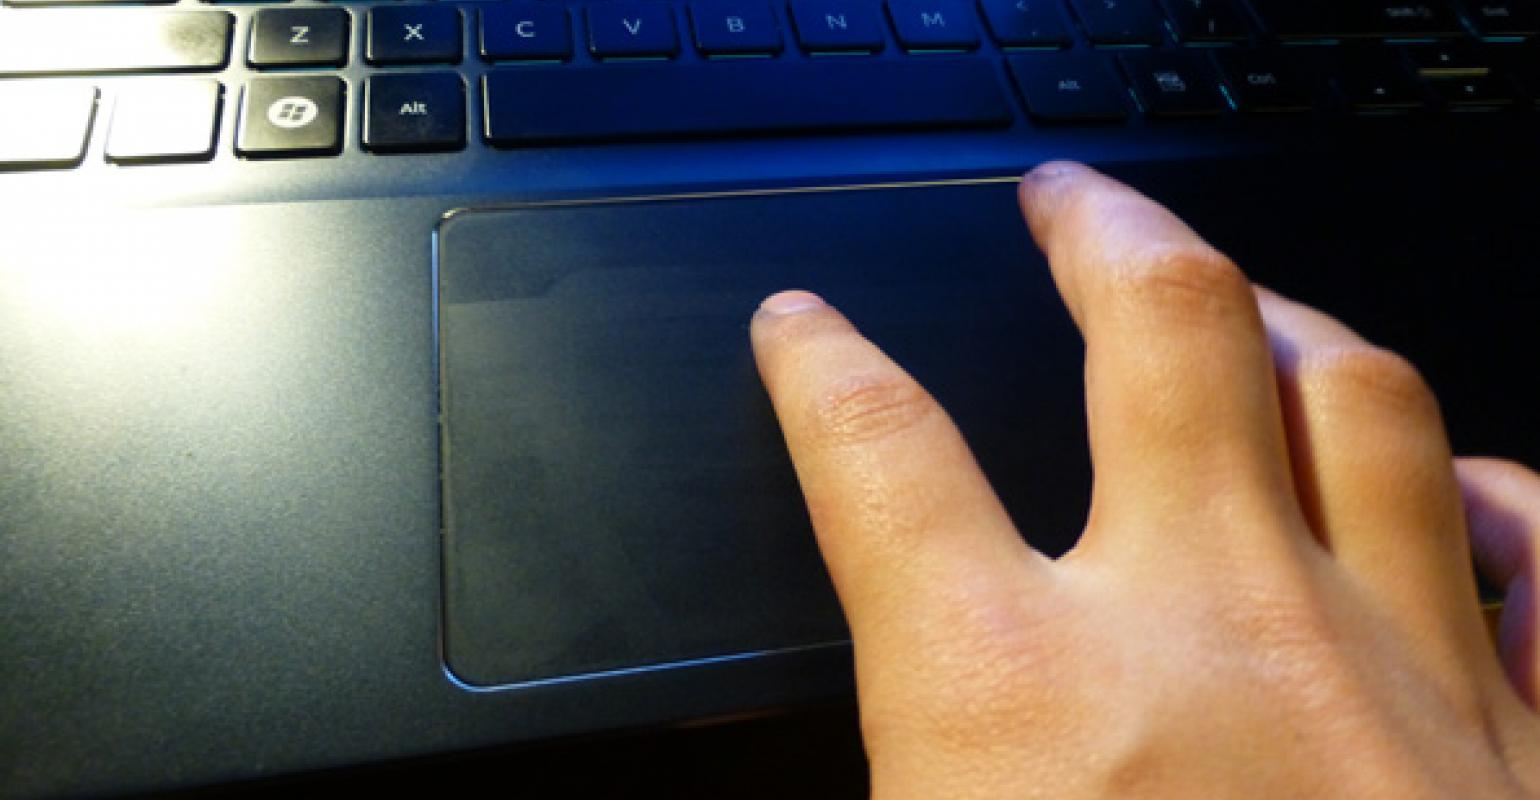 Windows 8 Tip: Use Trackpad Multi-touch Gestures | IT Pro